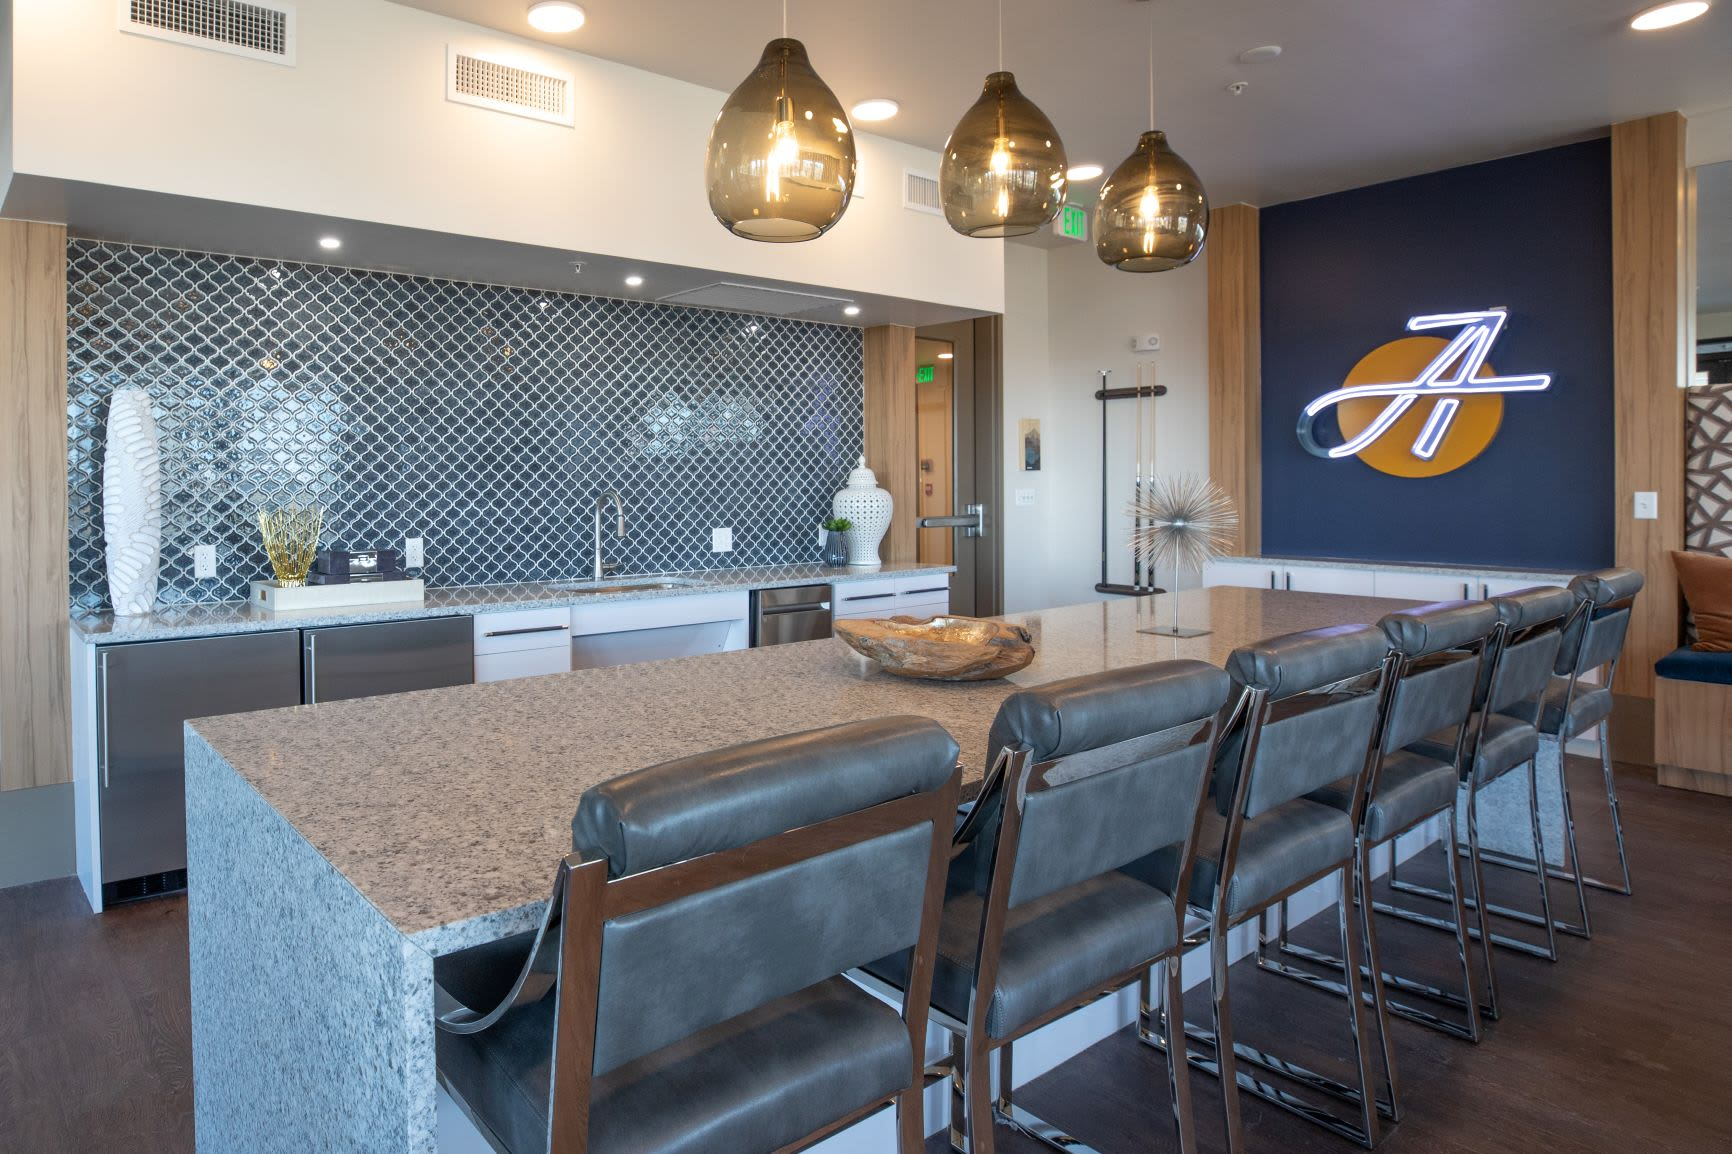 Kitchen area with bar seating at The Alcott in Downtown Denver, Colorado